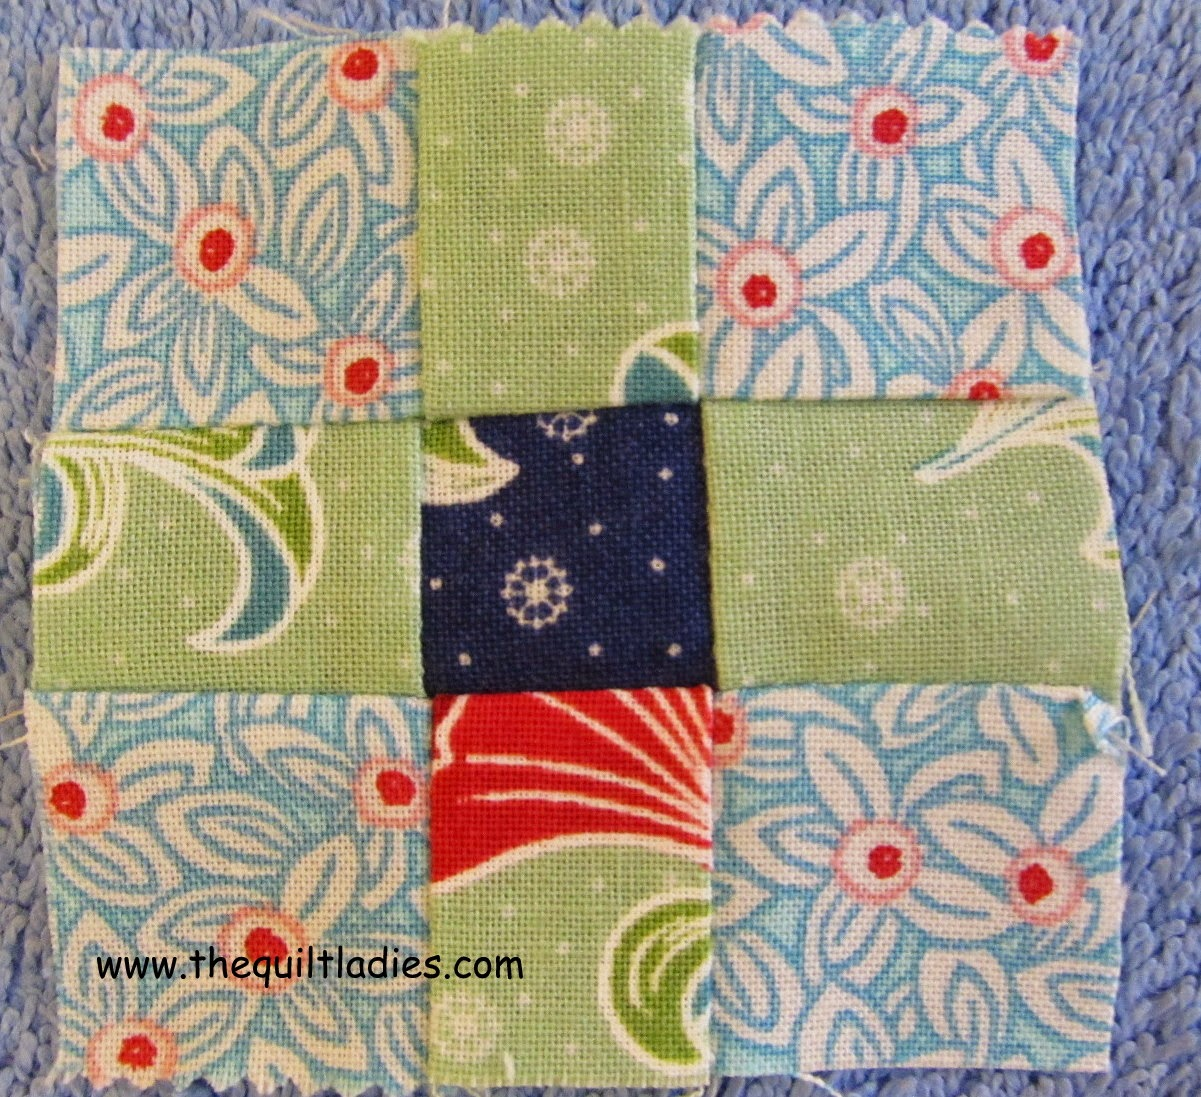 9-Patch Table Topper Quilt Pattern and Tutorial